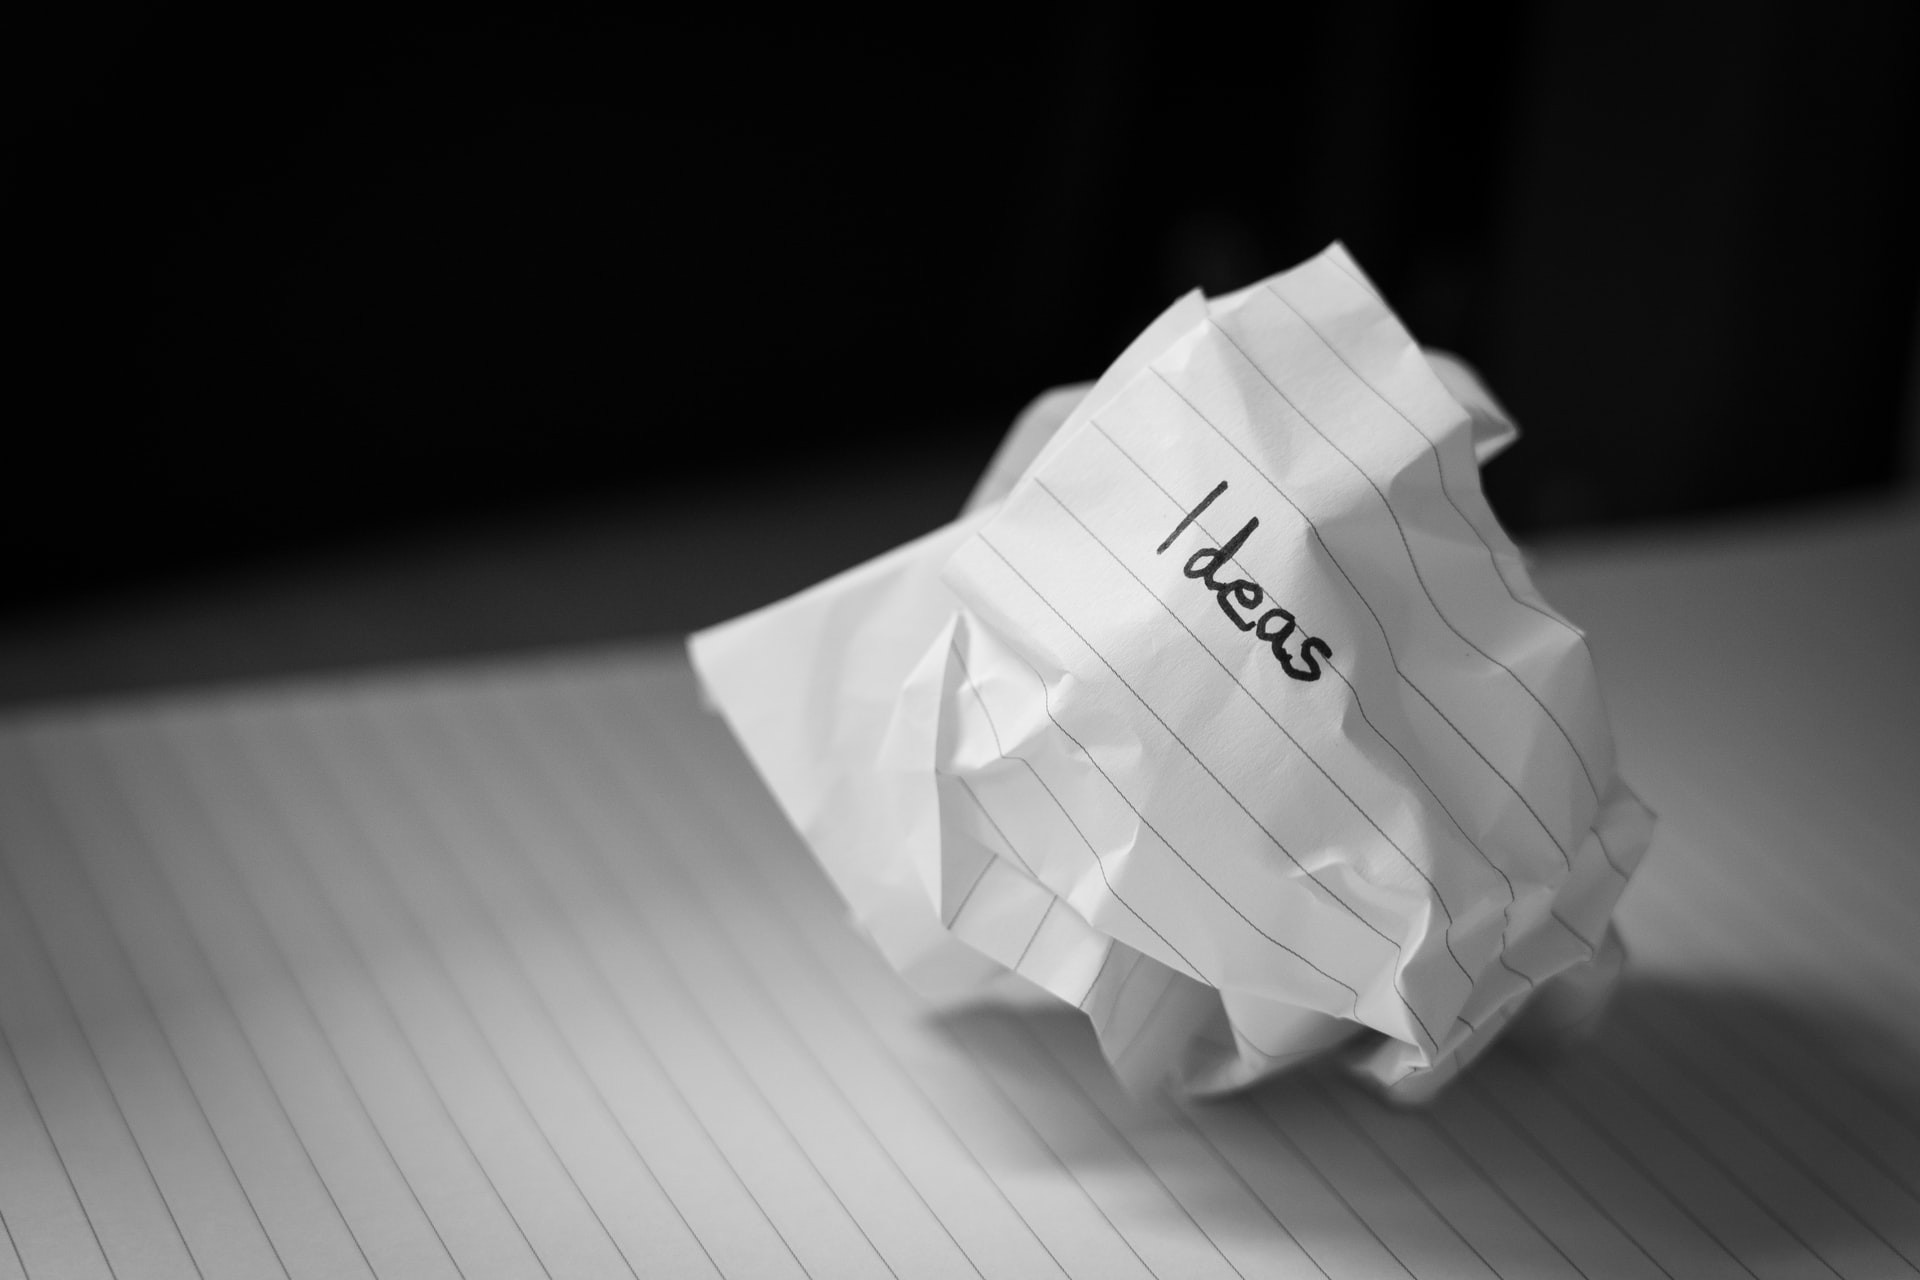 Screwed up paper with 'ideas' written on it